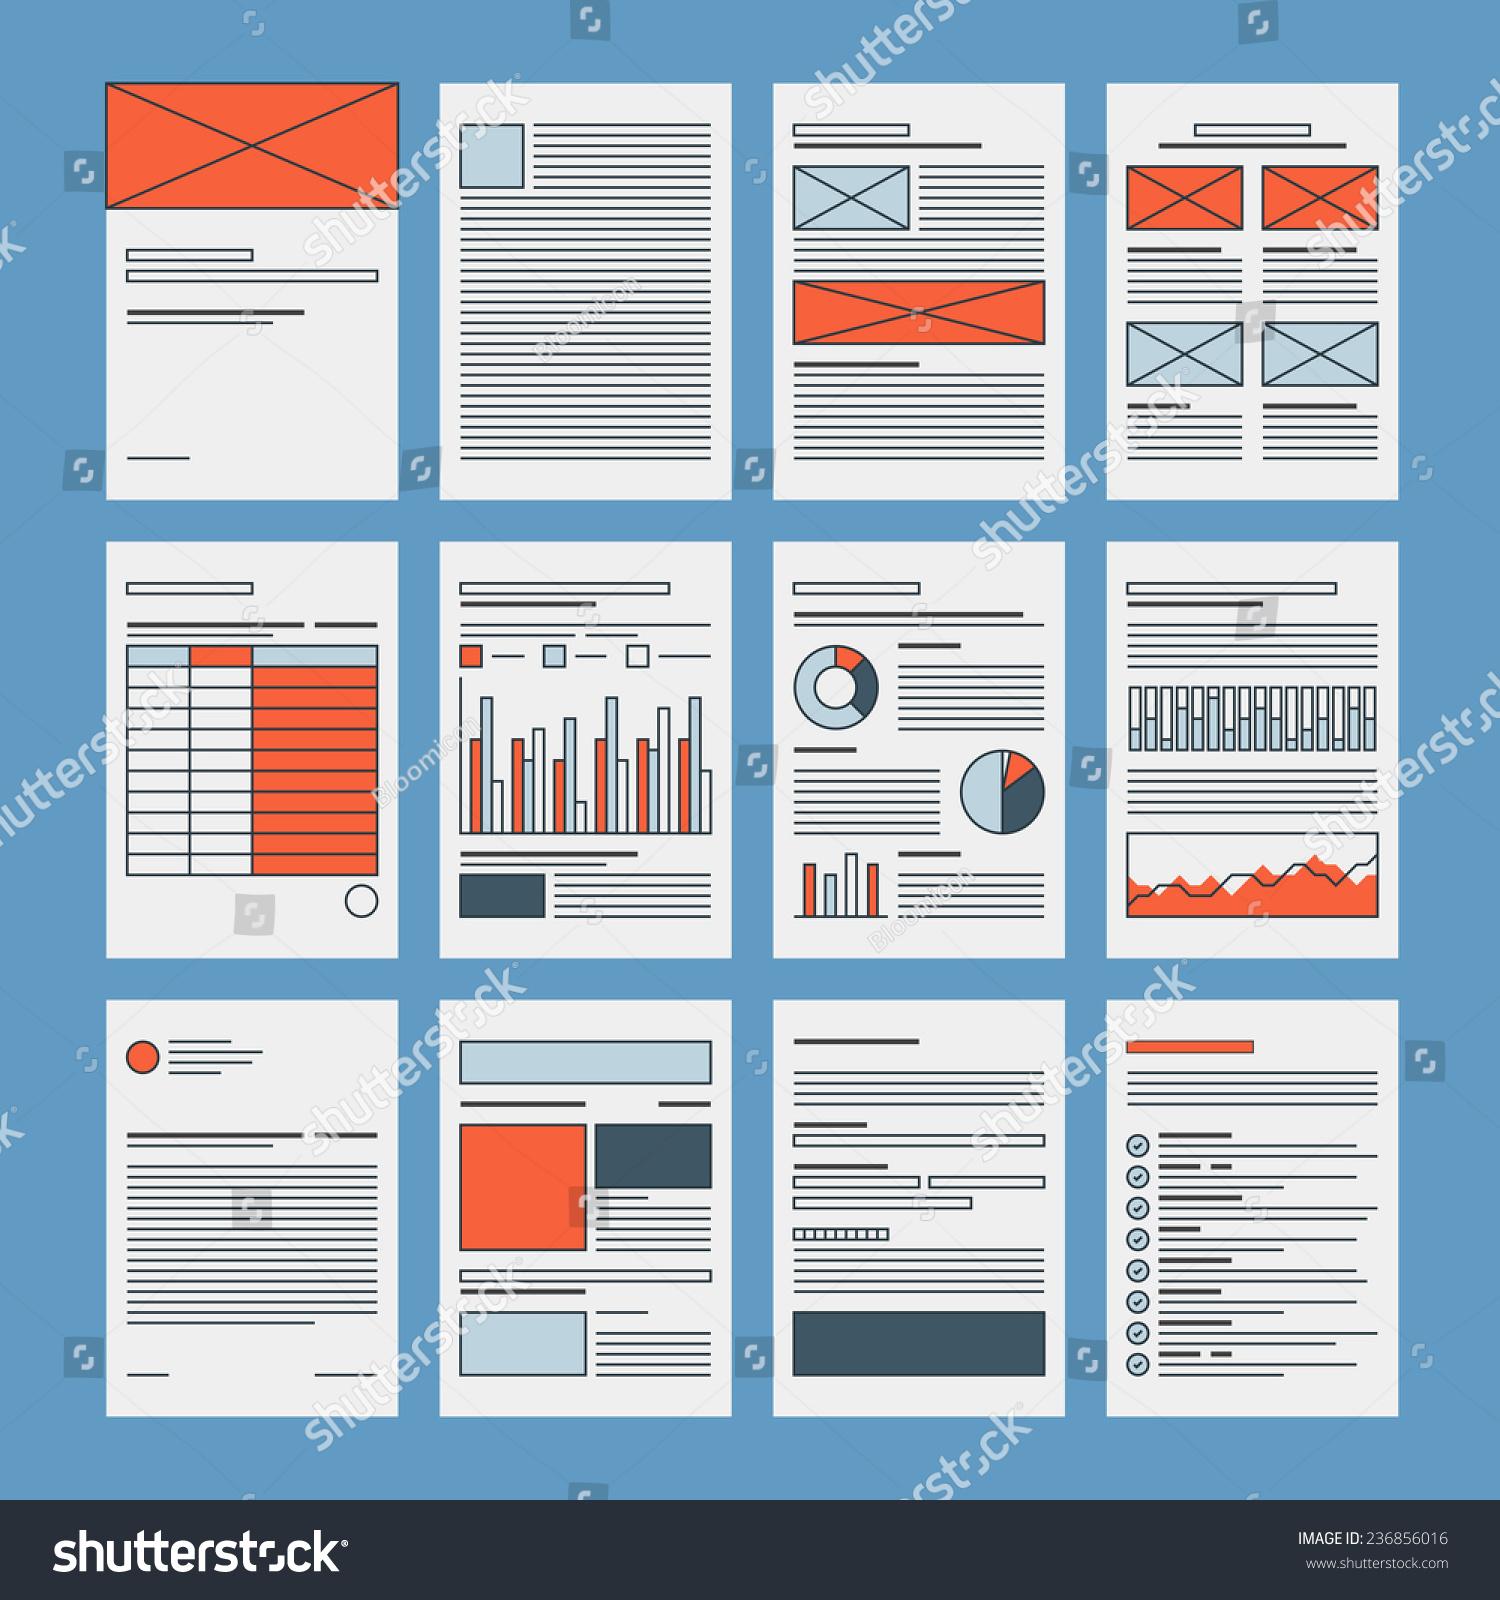 Business documents templates vatozozdevelopment business documents templates flashek Choice Image